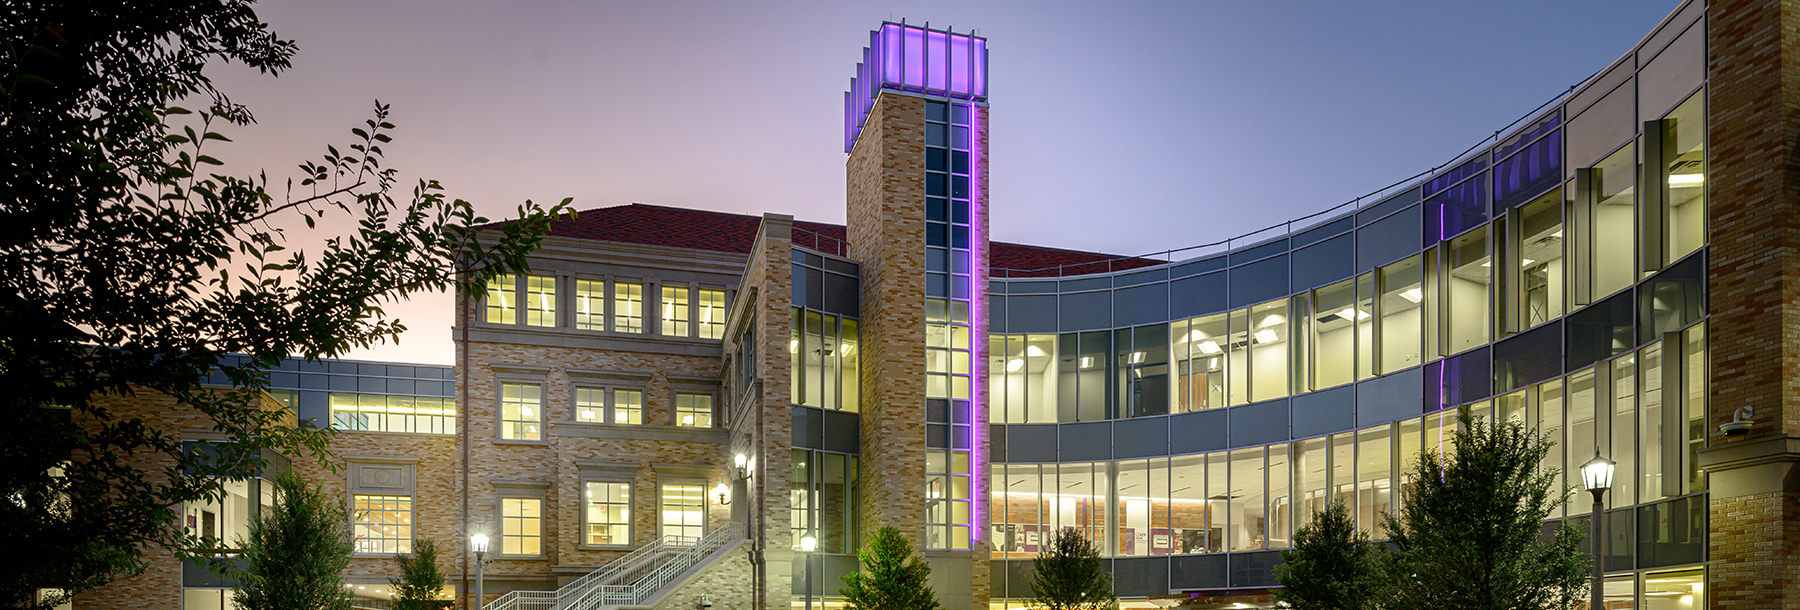 Section Image: Neeley School of Business